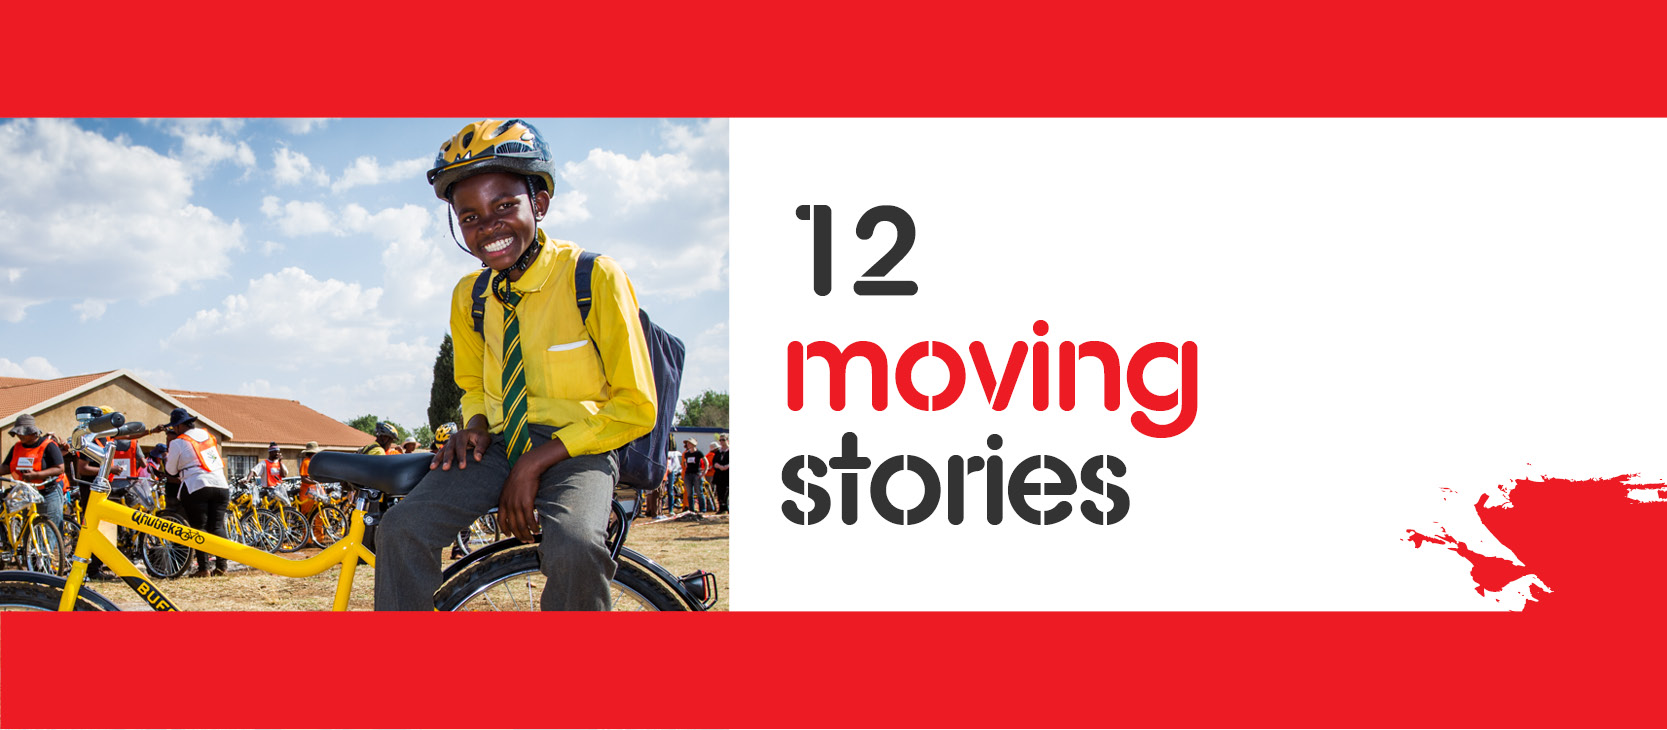 02-mobility-indaba-activities_12-stories